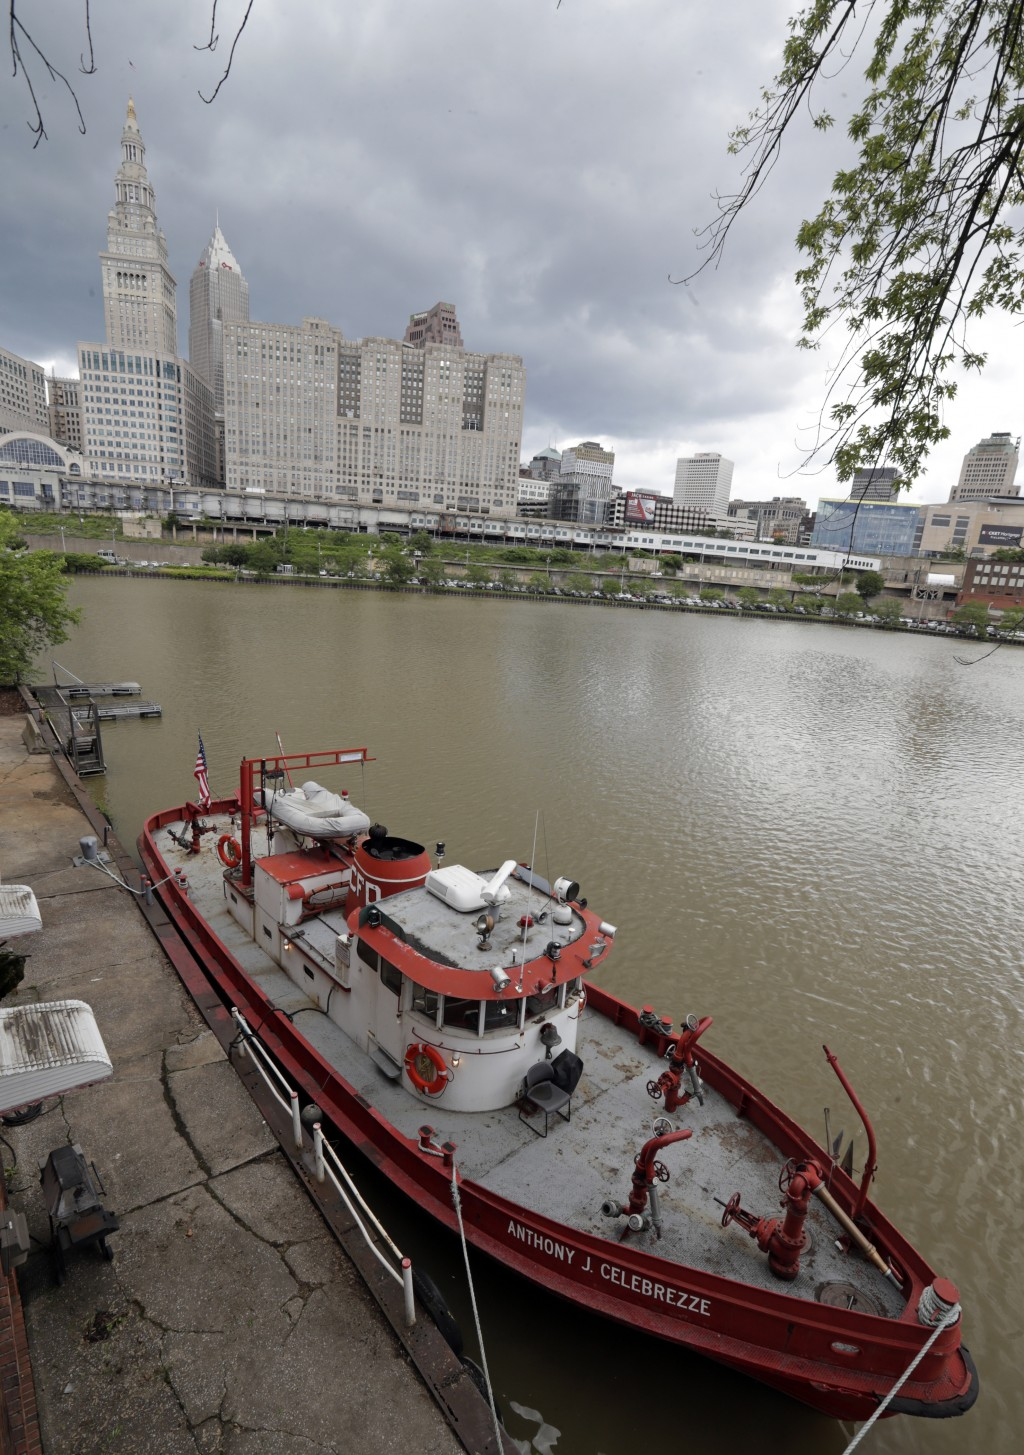 The Anthony J. Celebrezze rests on the Cuyahoga River, Thursday, June 13, 2019, in Cleveland. The fire boat extinguished hot spots on a railroad bridg